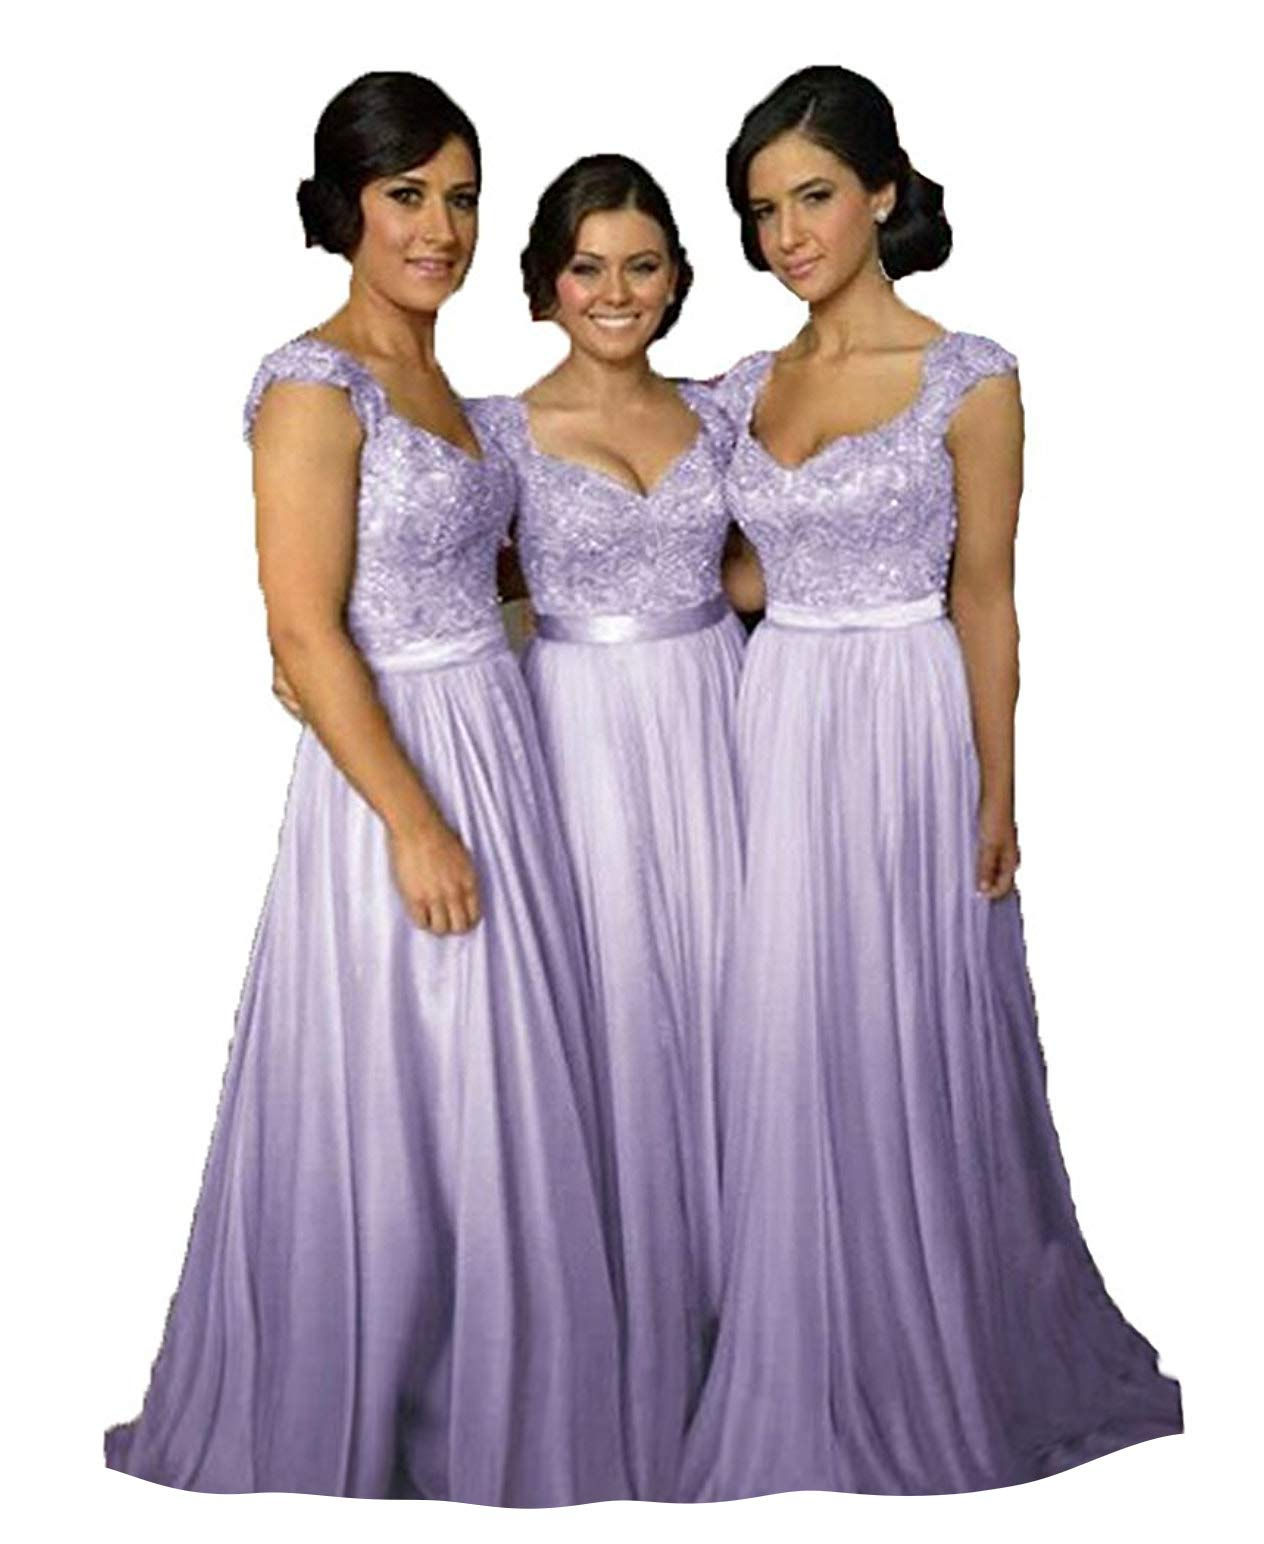 top-rated official best quality for best selection of Fanciest Women' Cap Sleeve Lace Bridesmaid Dresses Long Wedding Party Gowns  Lavender US12